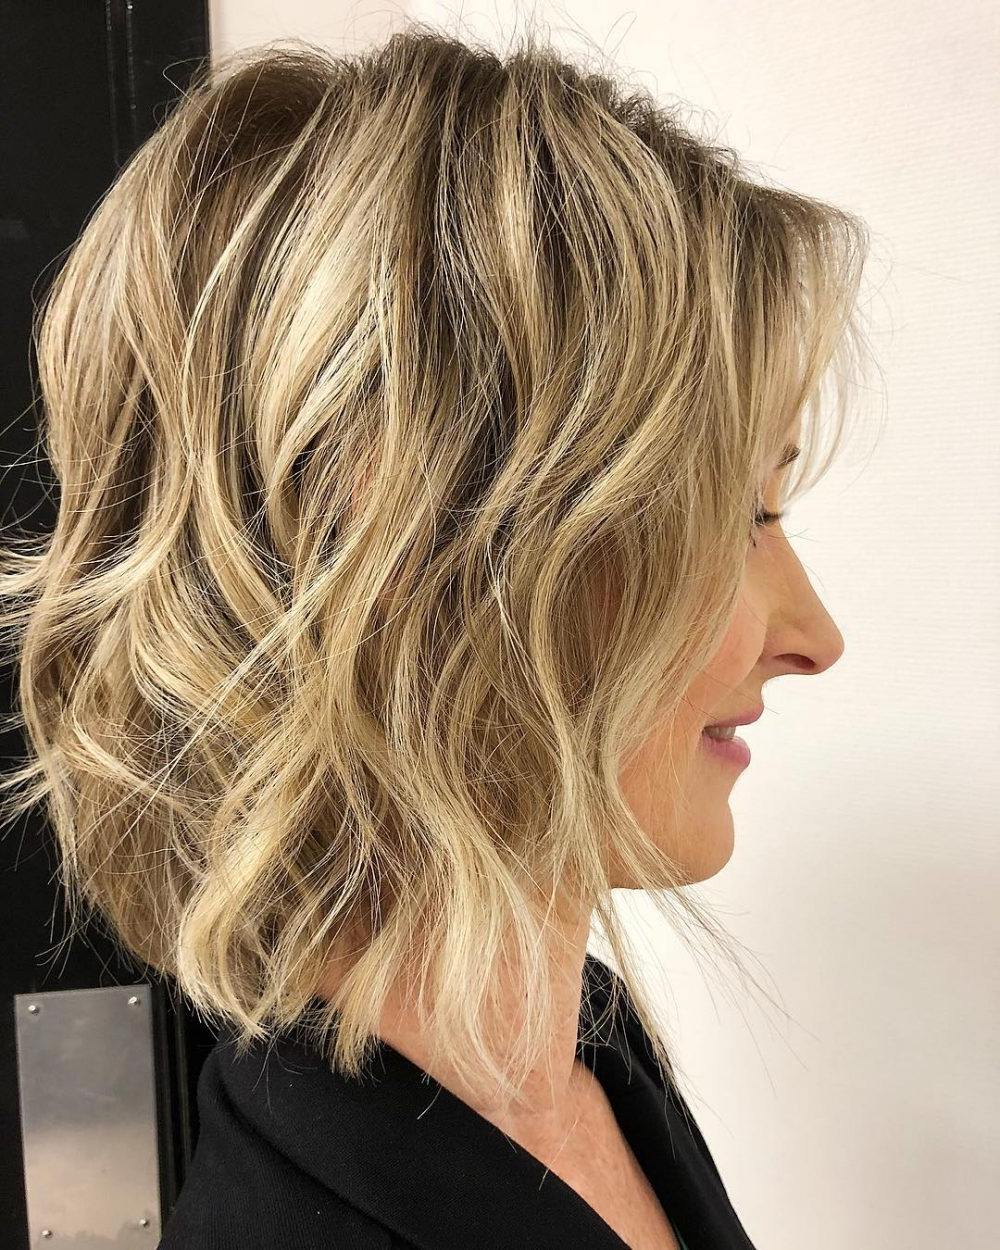 43 Perfect Short Hairstyles For Fine Hair In 2018 Within Tousled Razored Bob Hairstyles (View 5 of 20)